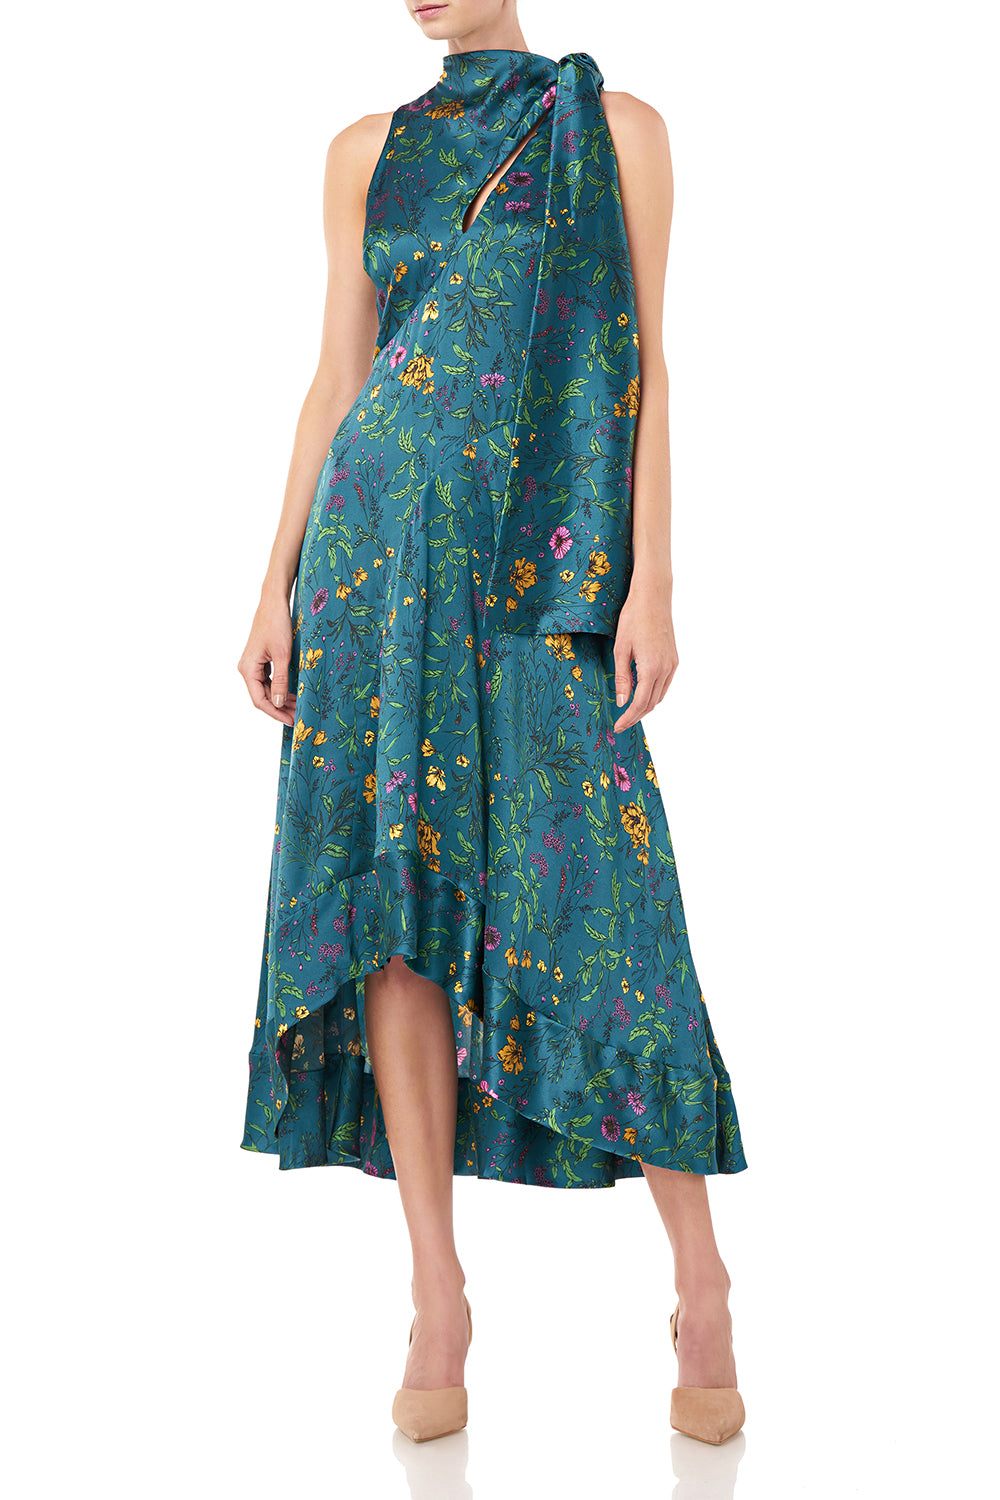 Georgia Dress in Teal Multi Wildflowers